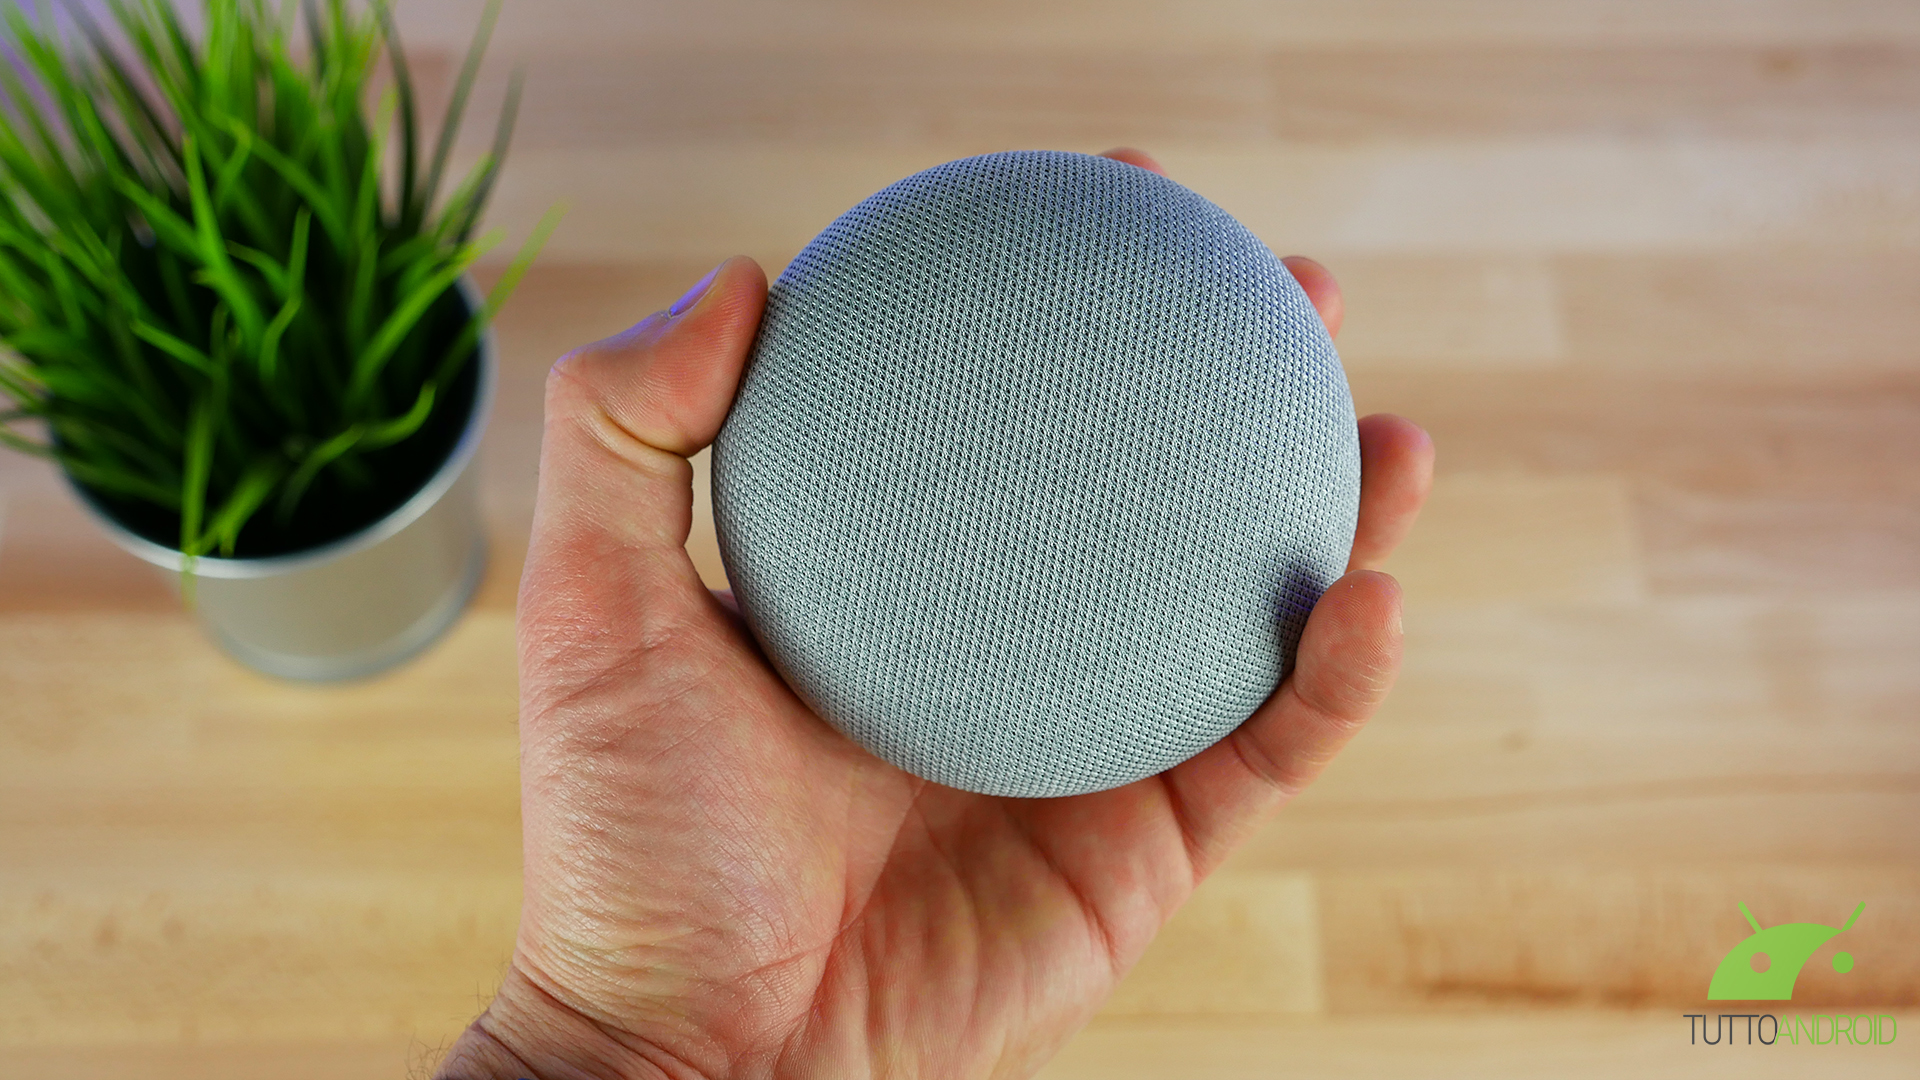 Google Home Mini a un prezzo imperdibile da MediaWorld: 9,99 euro